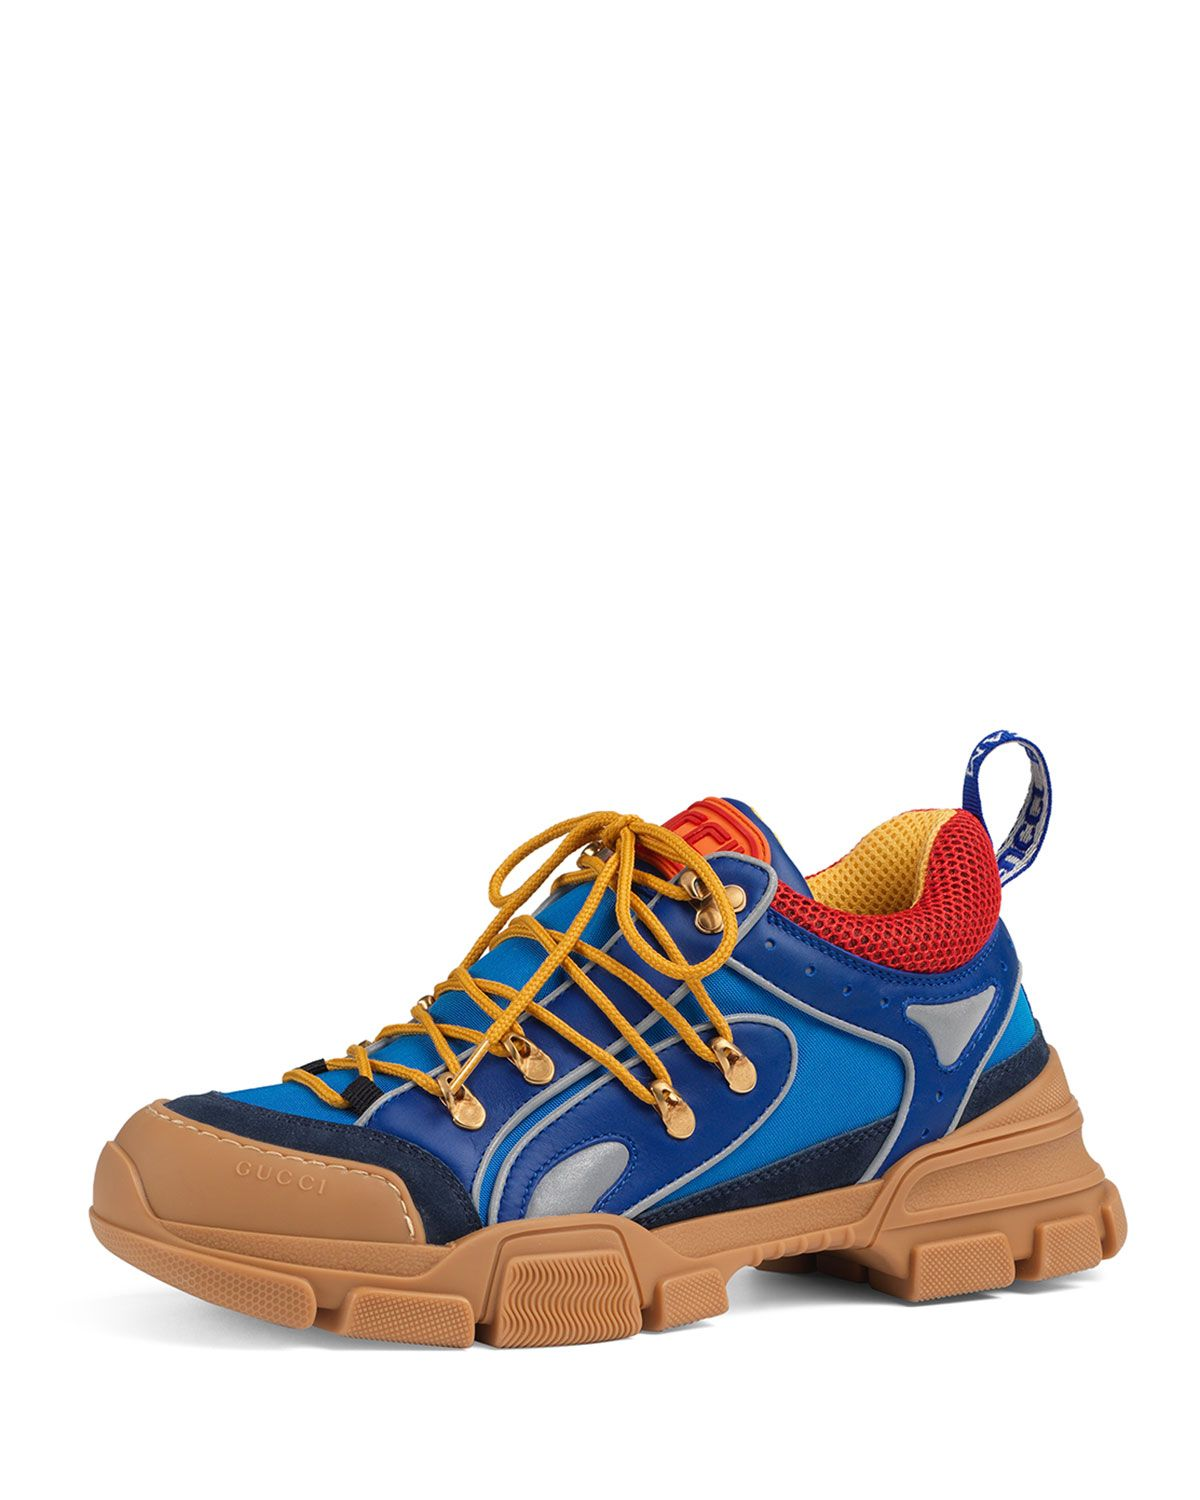 newest ea5aa ba623 GUCCI MENS FLASHTREK LOW BOOT SNEAKERS, MULTI BLUE. gucci shoes